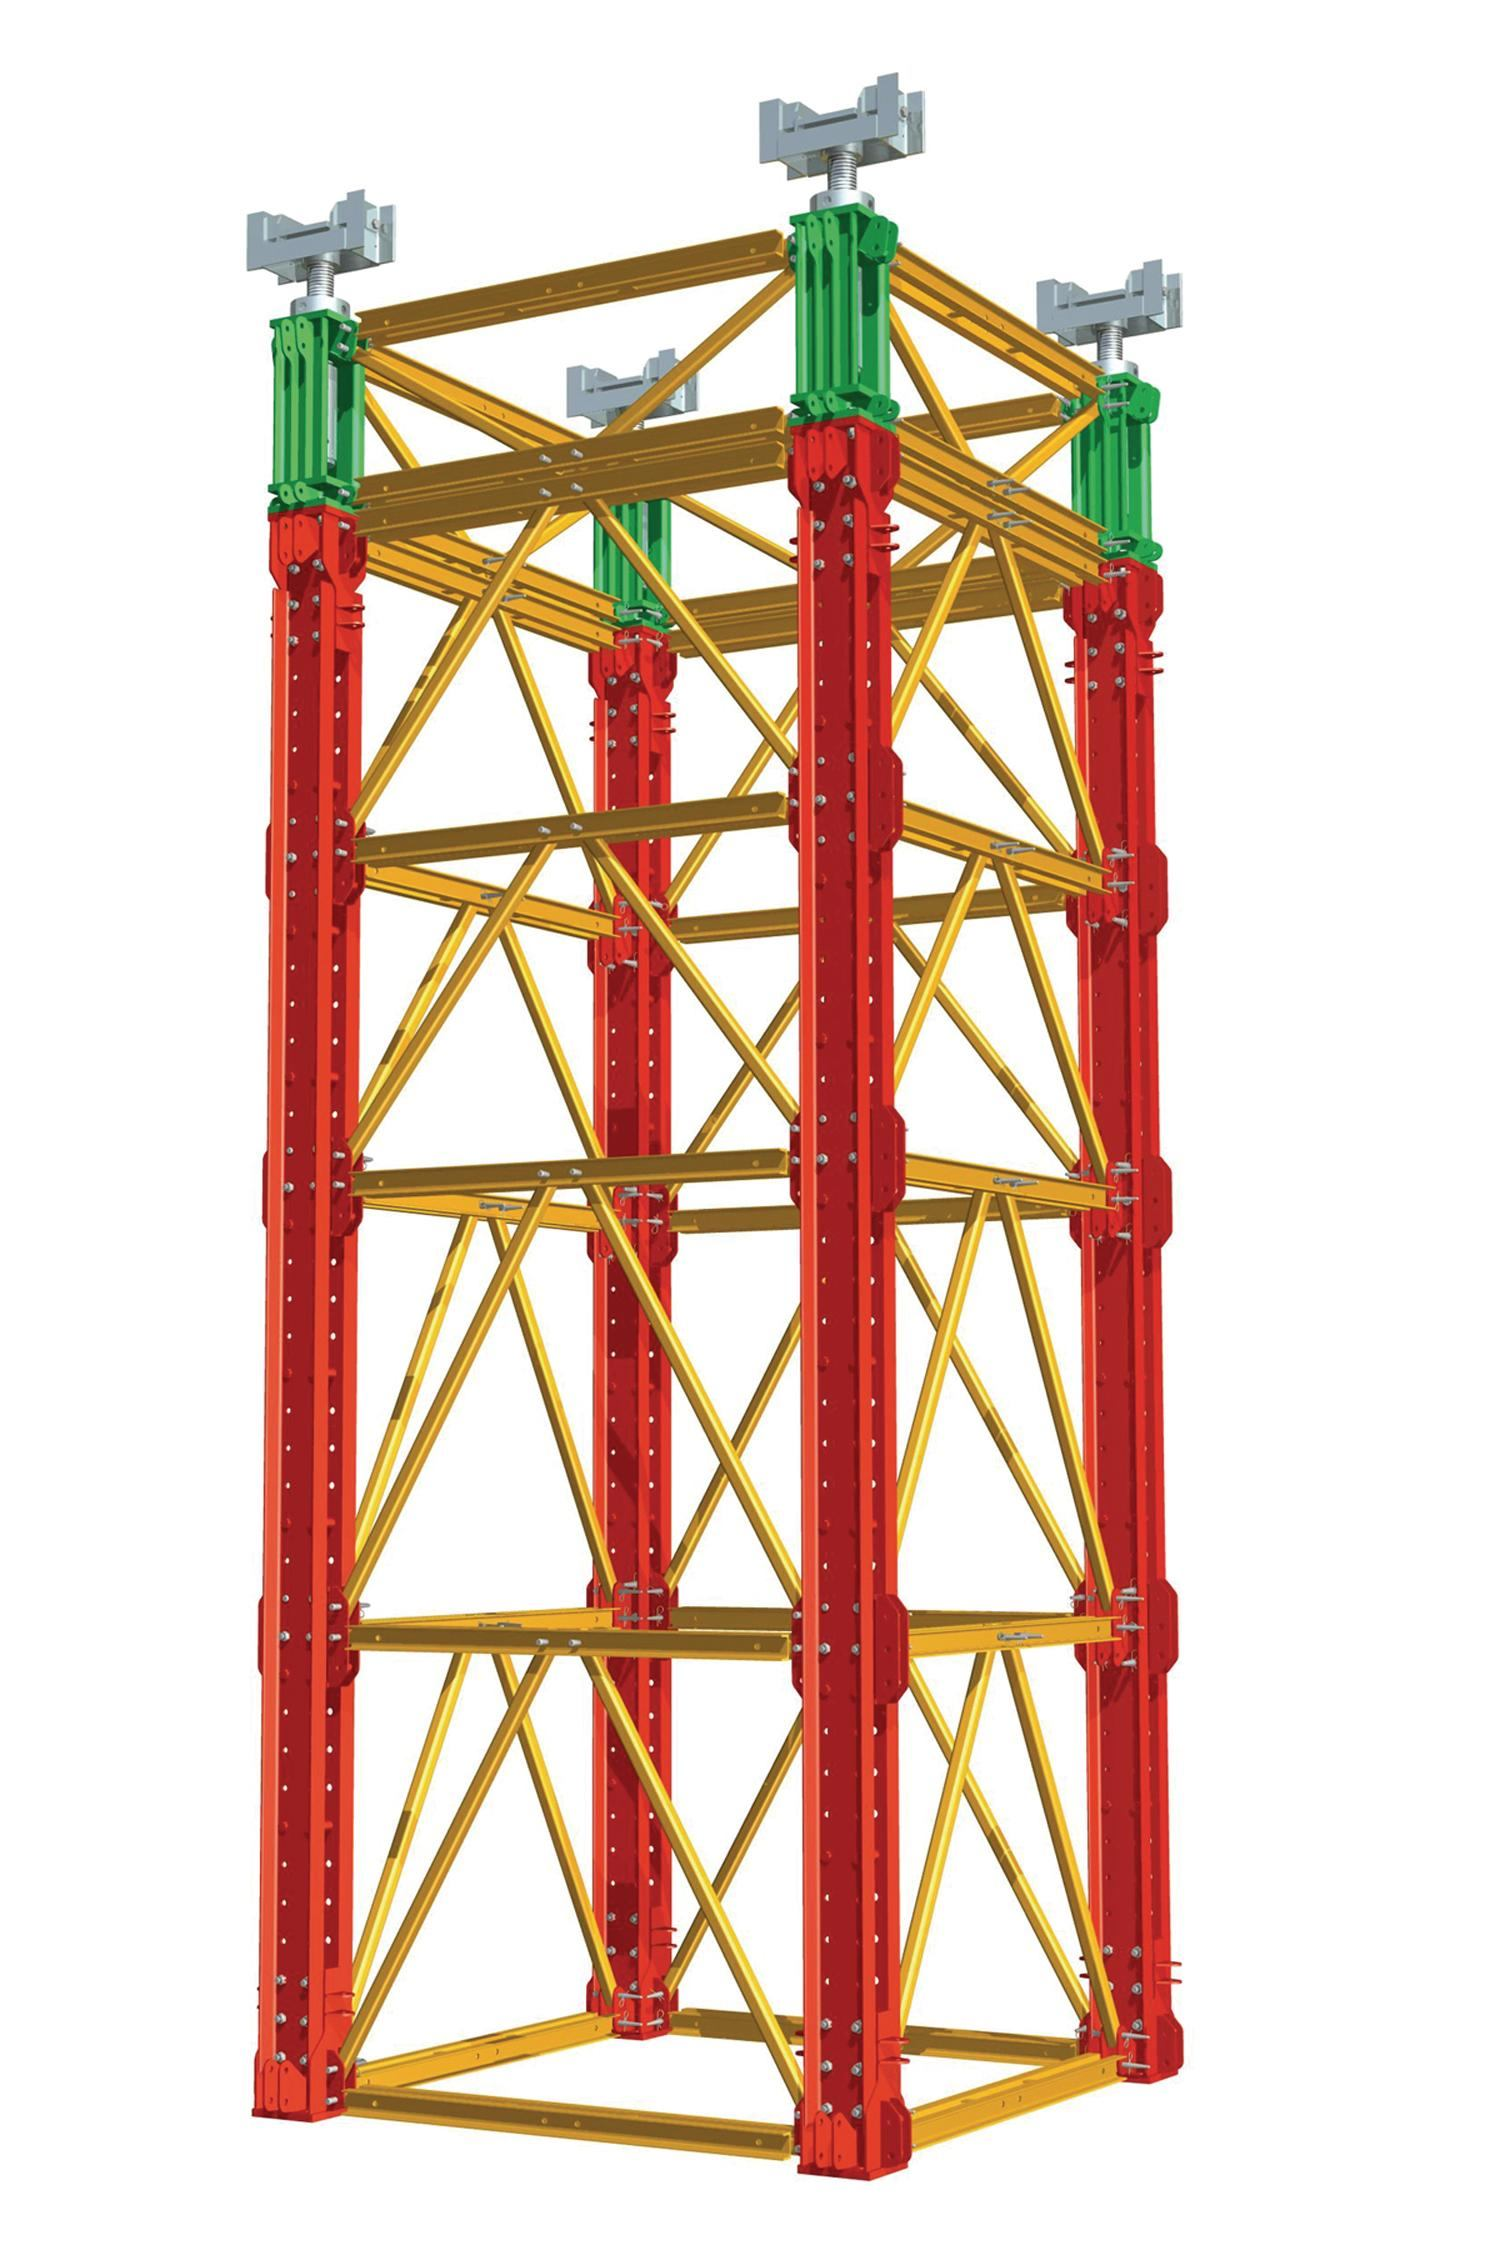 Peri Formwork Systems Inc Variokit Shoring Tower